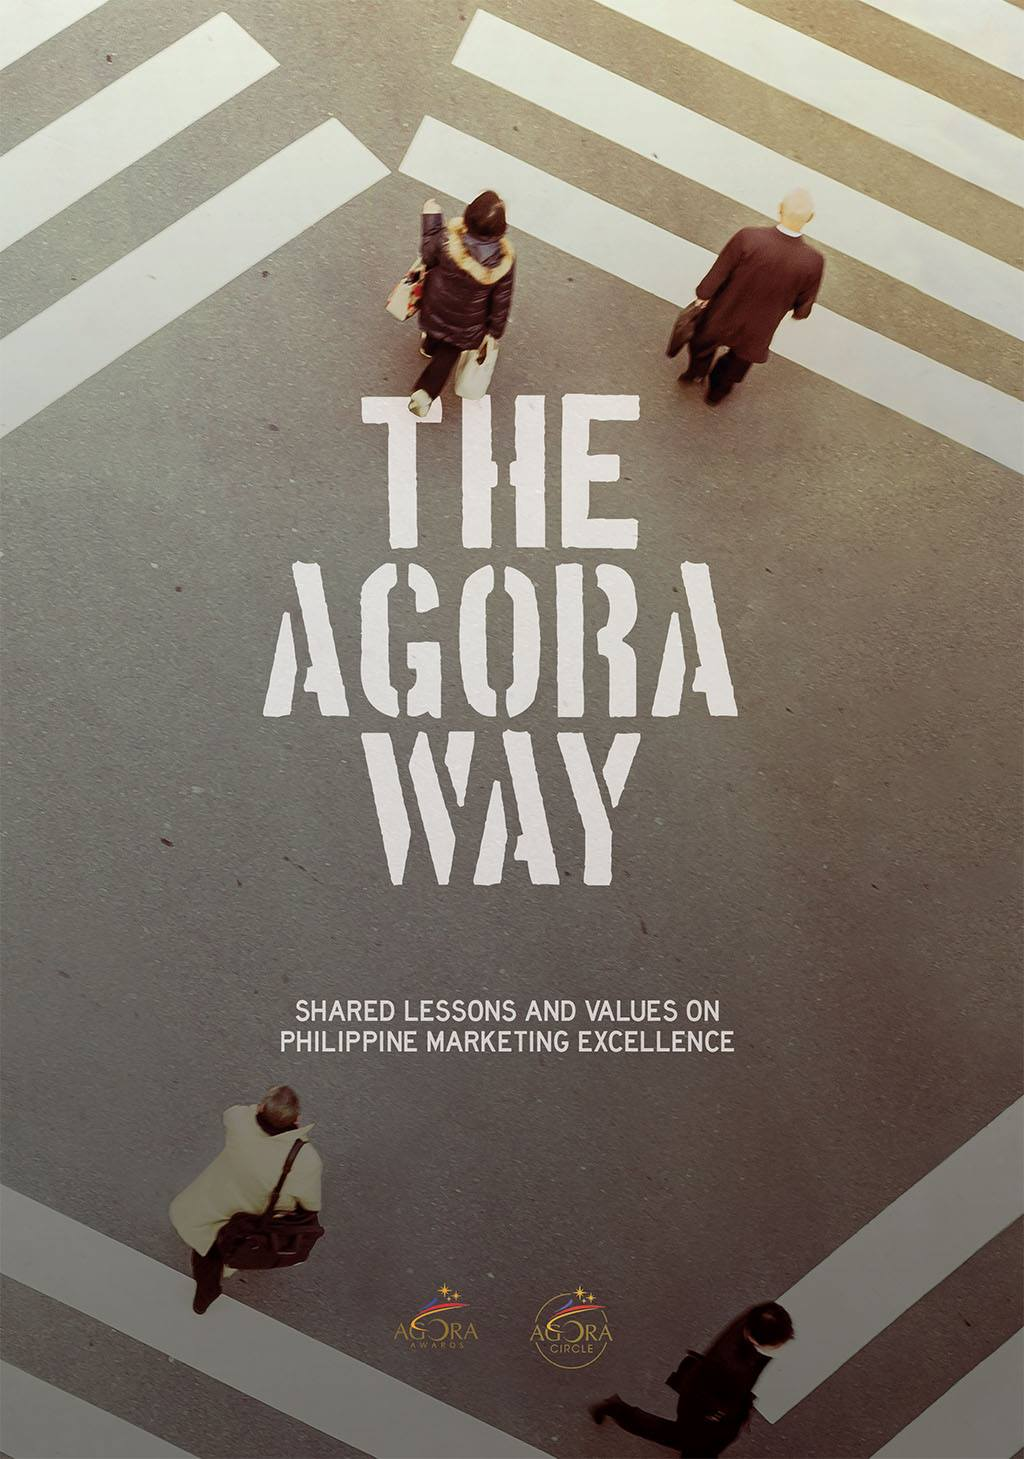 The Agora Way